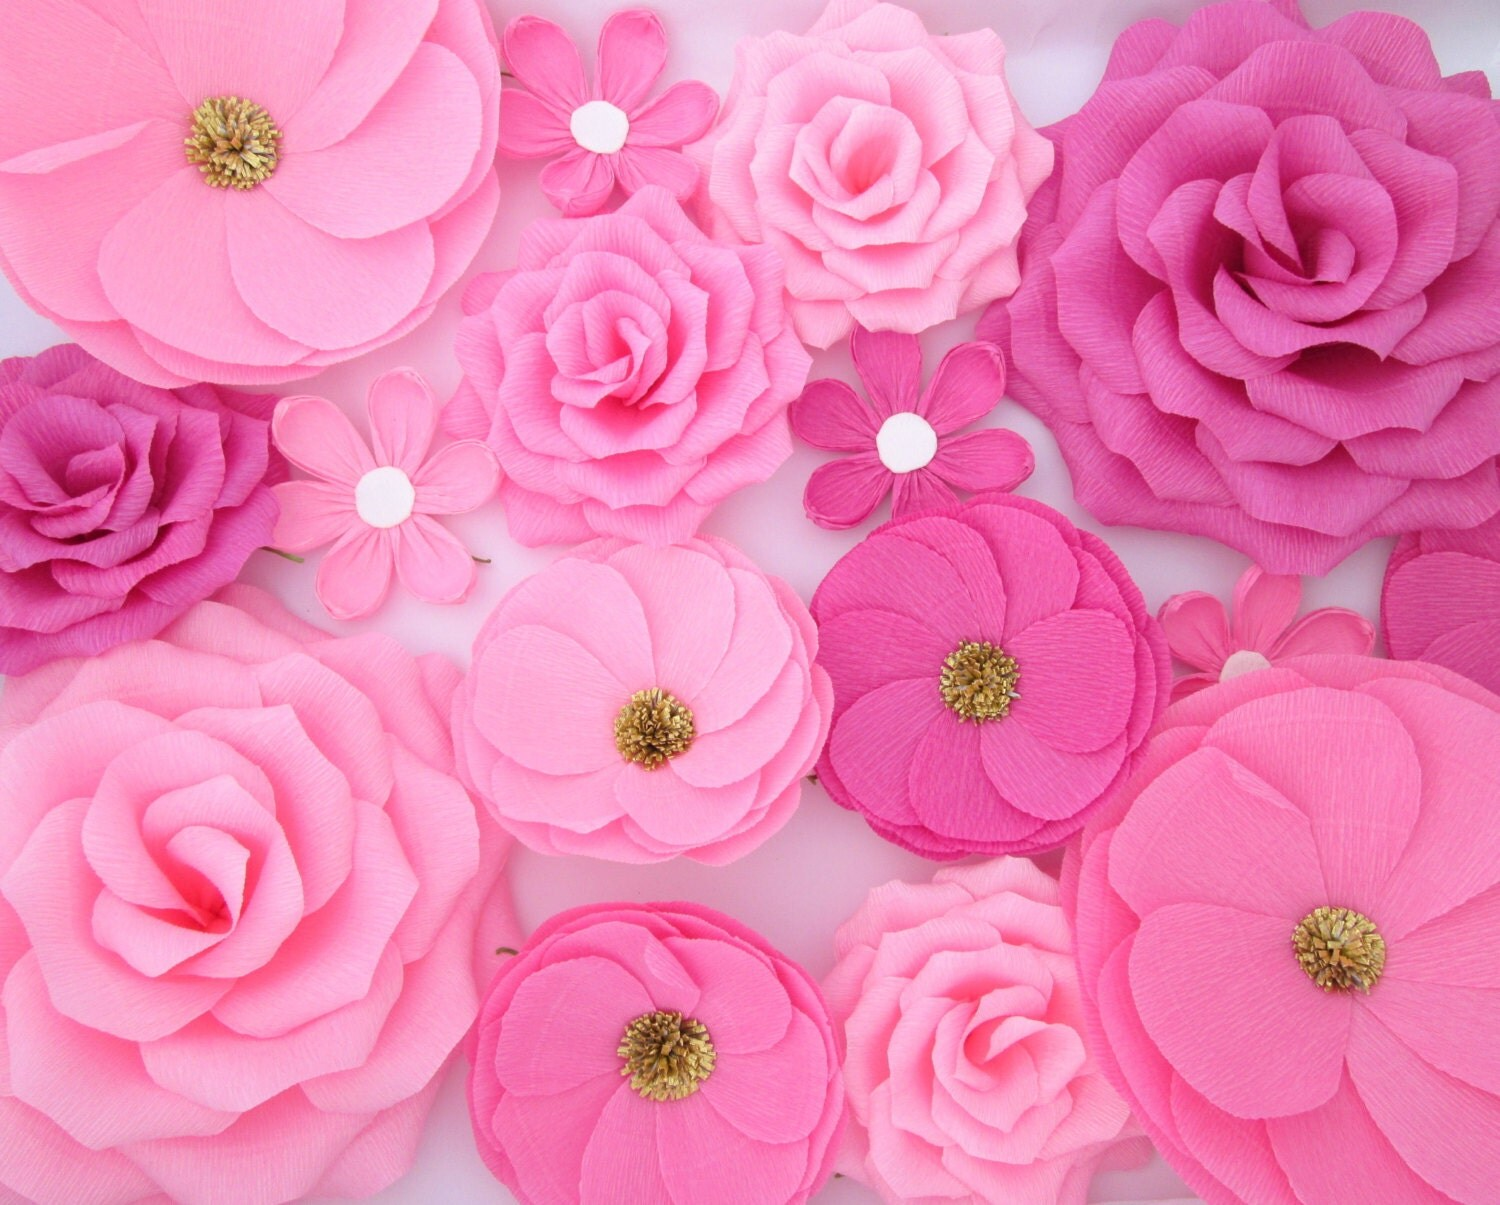 Wall Flowers Decor 16 paper flowers/ wall flowers/ arch flowers/ wedding